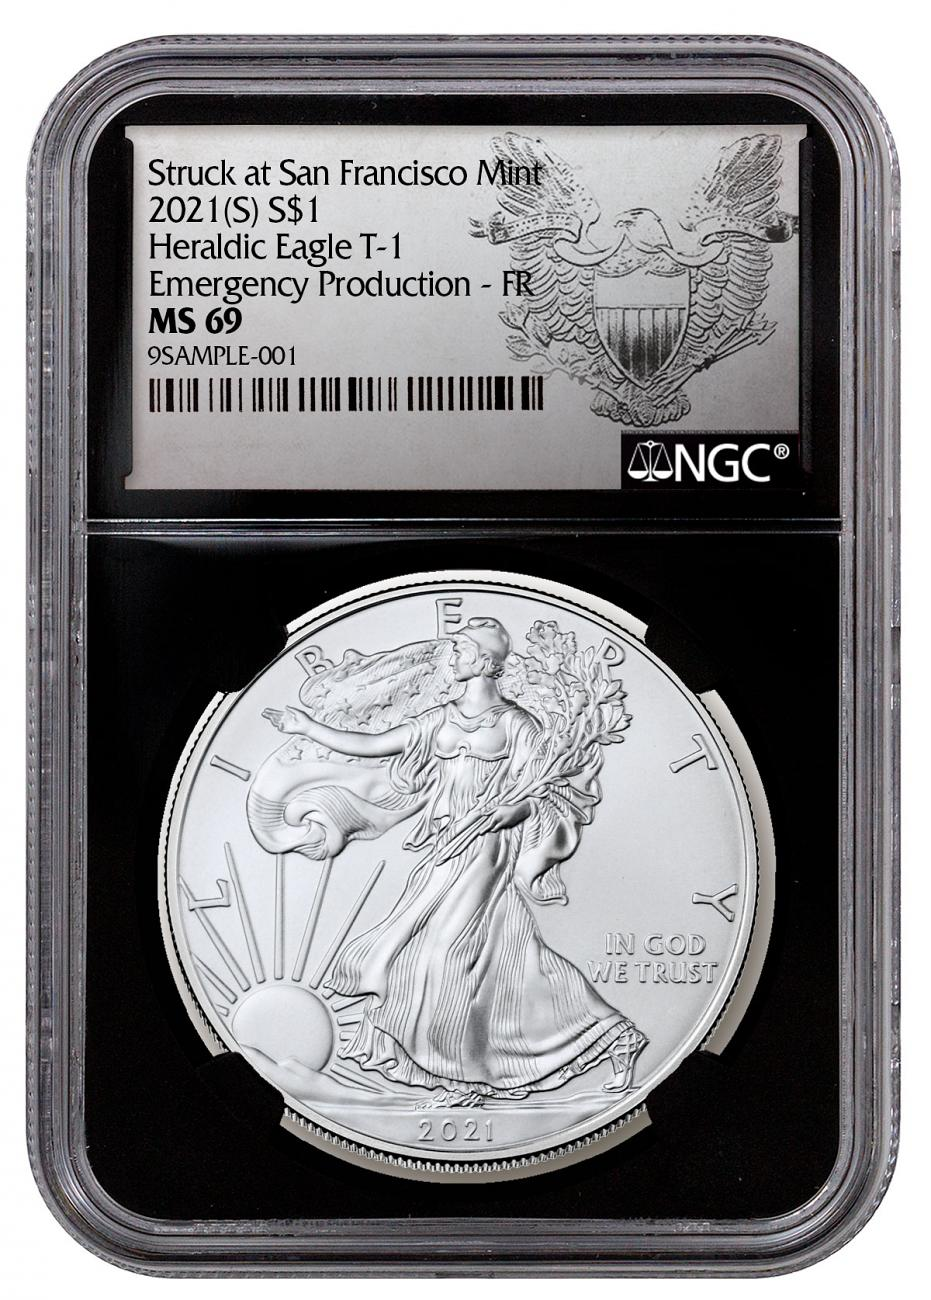 2021-(S) American Silver Eagle Emergency Production Struck at San Francisco Mint T-1 NGC MS69 FR Black Core Holder Exclusive Heraldic Eagle Label